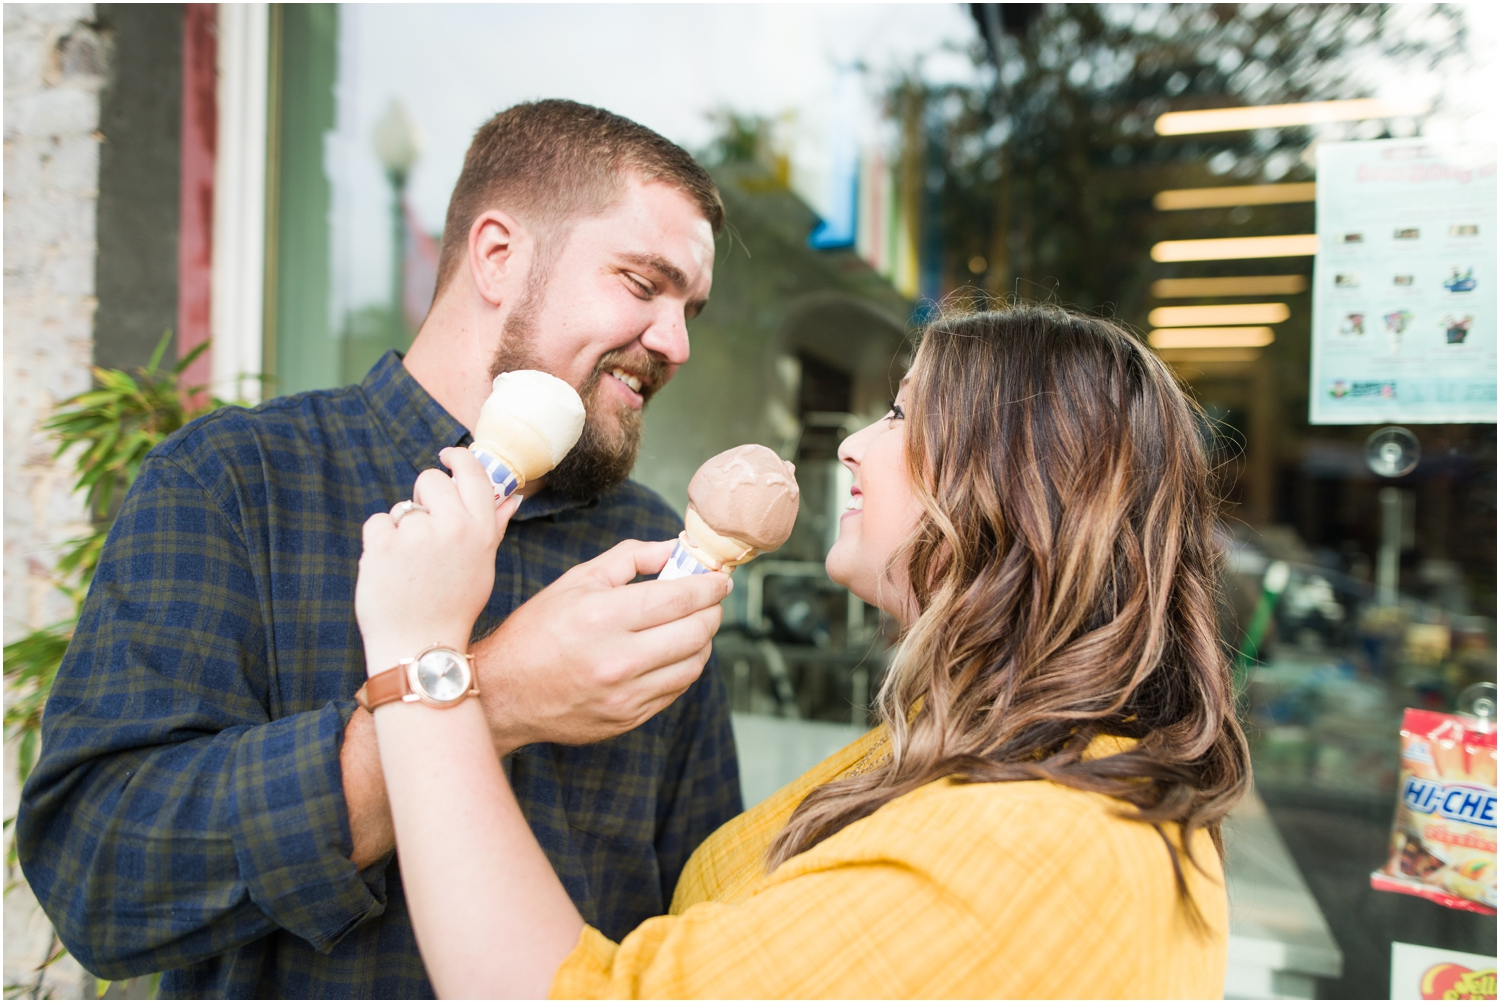 What's a little ice cream in your face between soulmates?